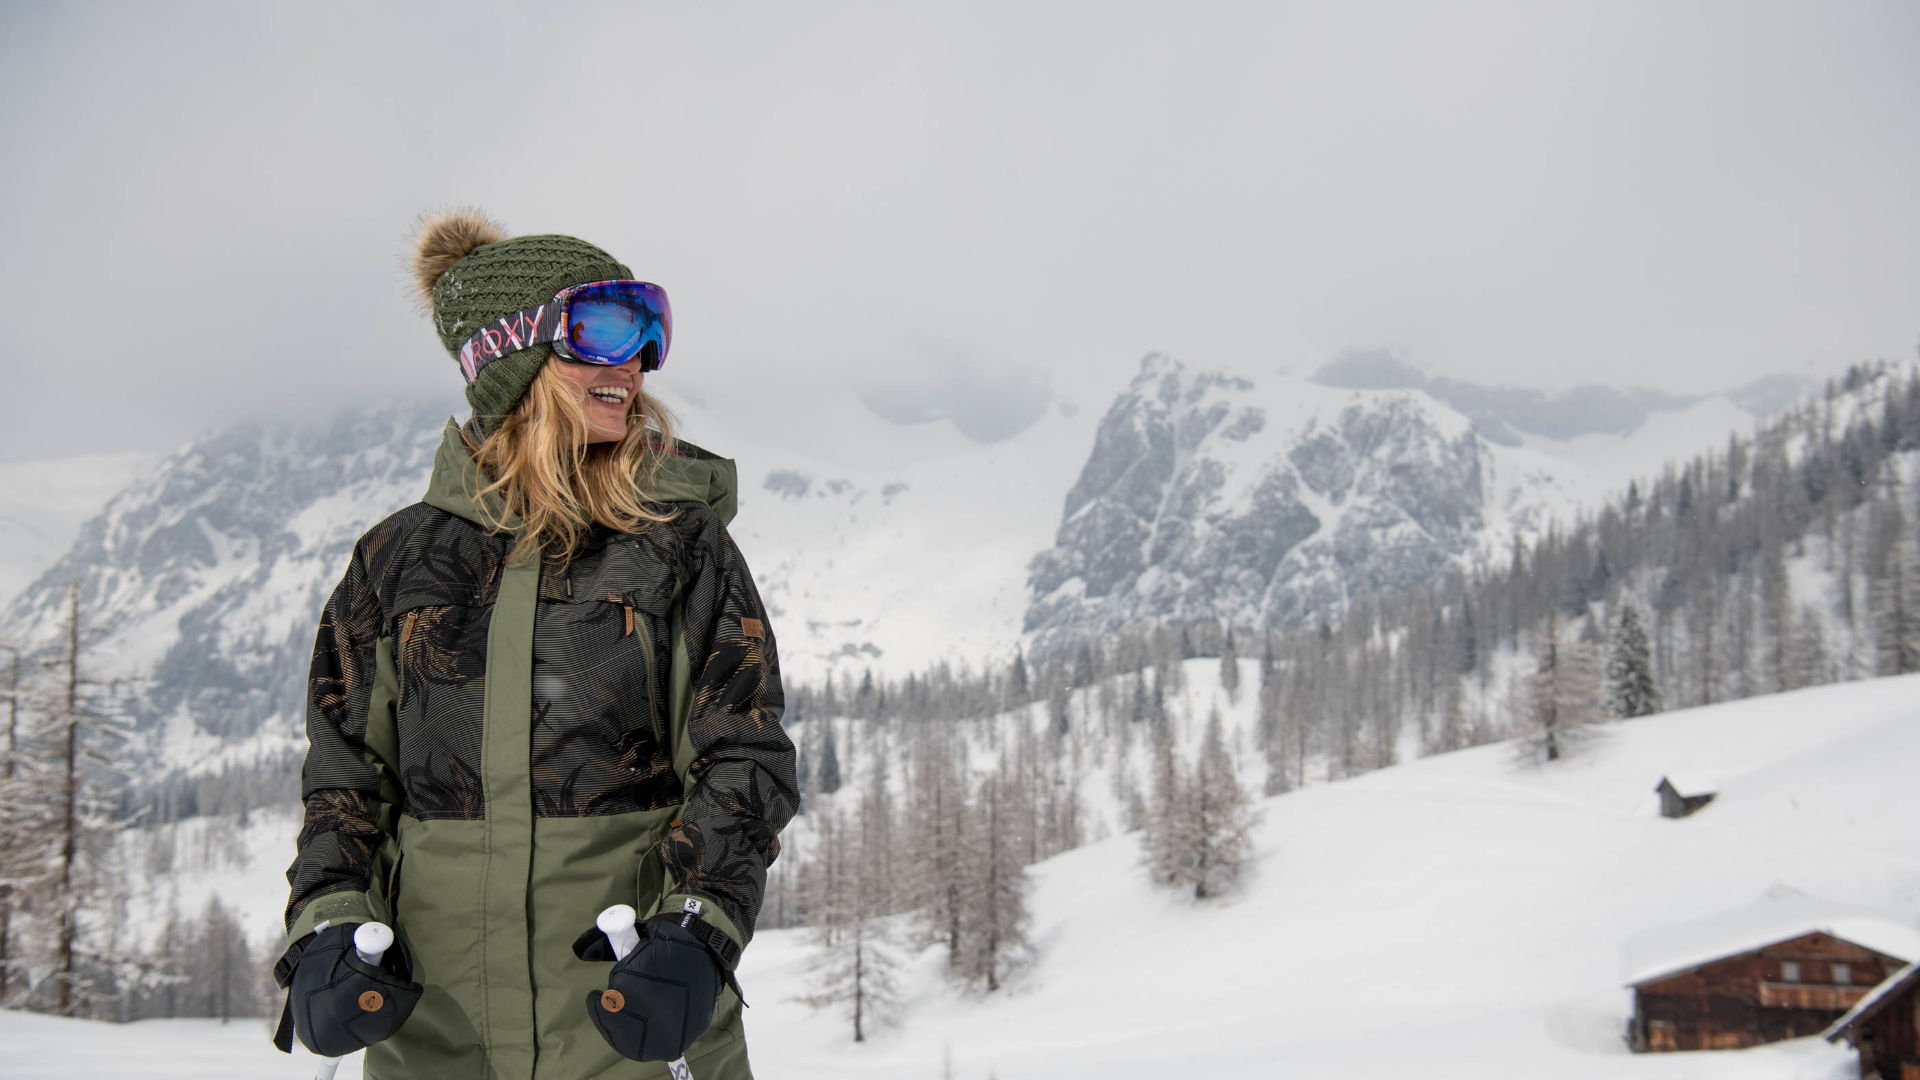 A female skier in changeable conditions in the mountains